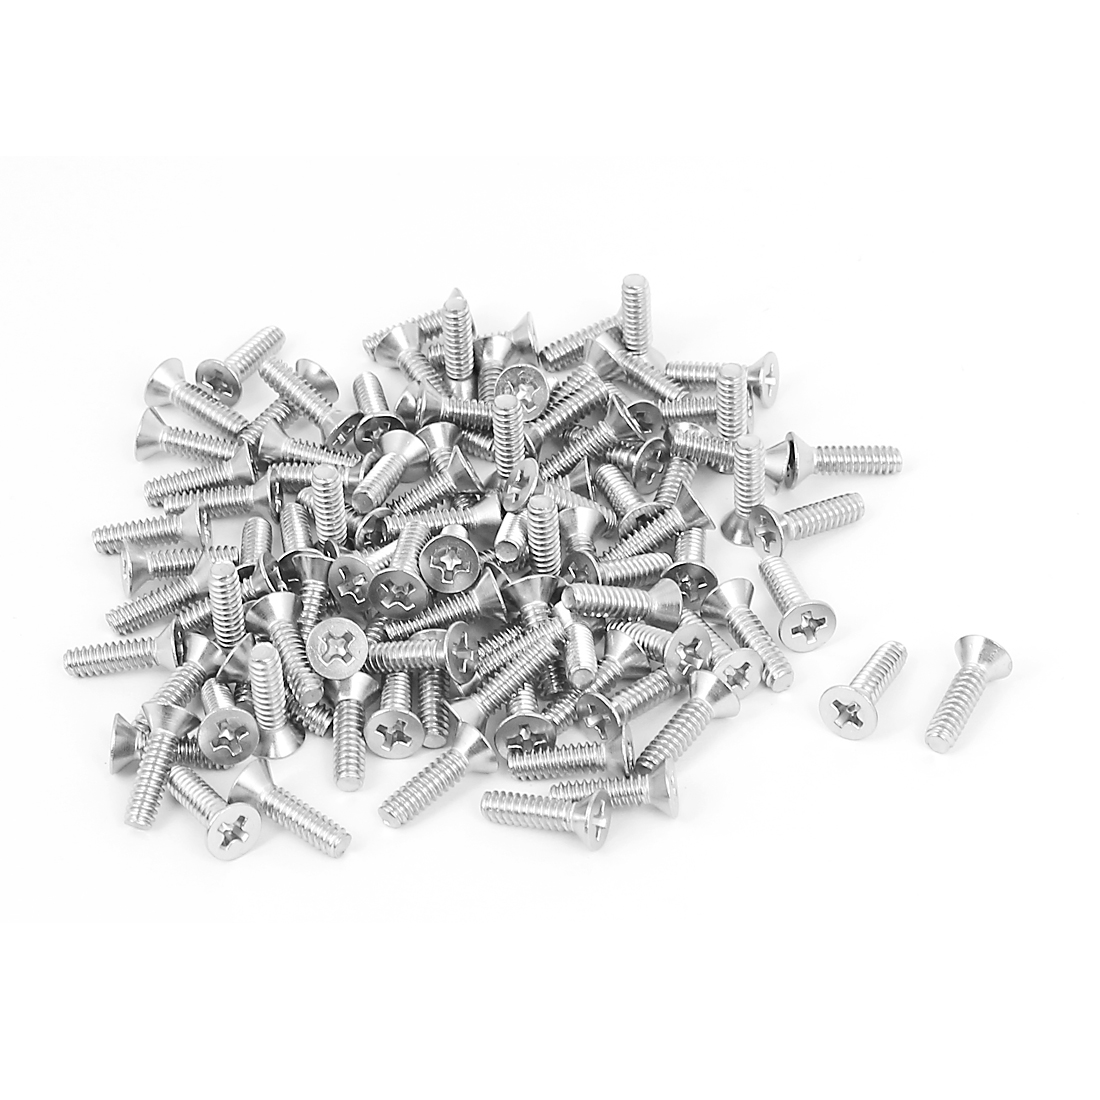 "6#-32x1/2"" 304 Stainless Steel Phillips Flat Countersunk Head Screws 100pcs"